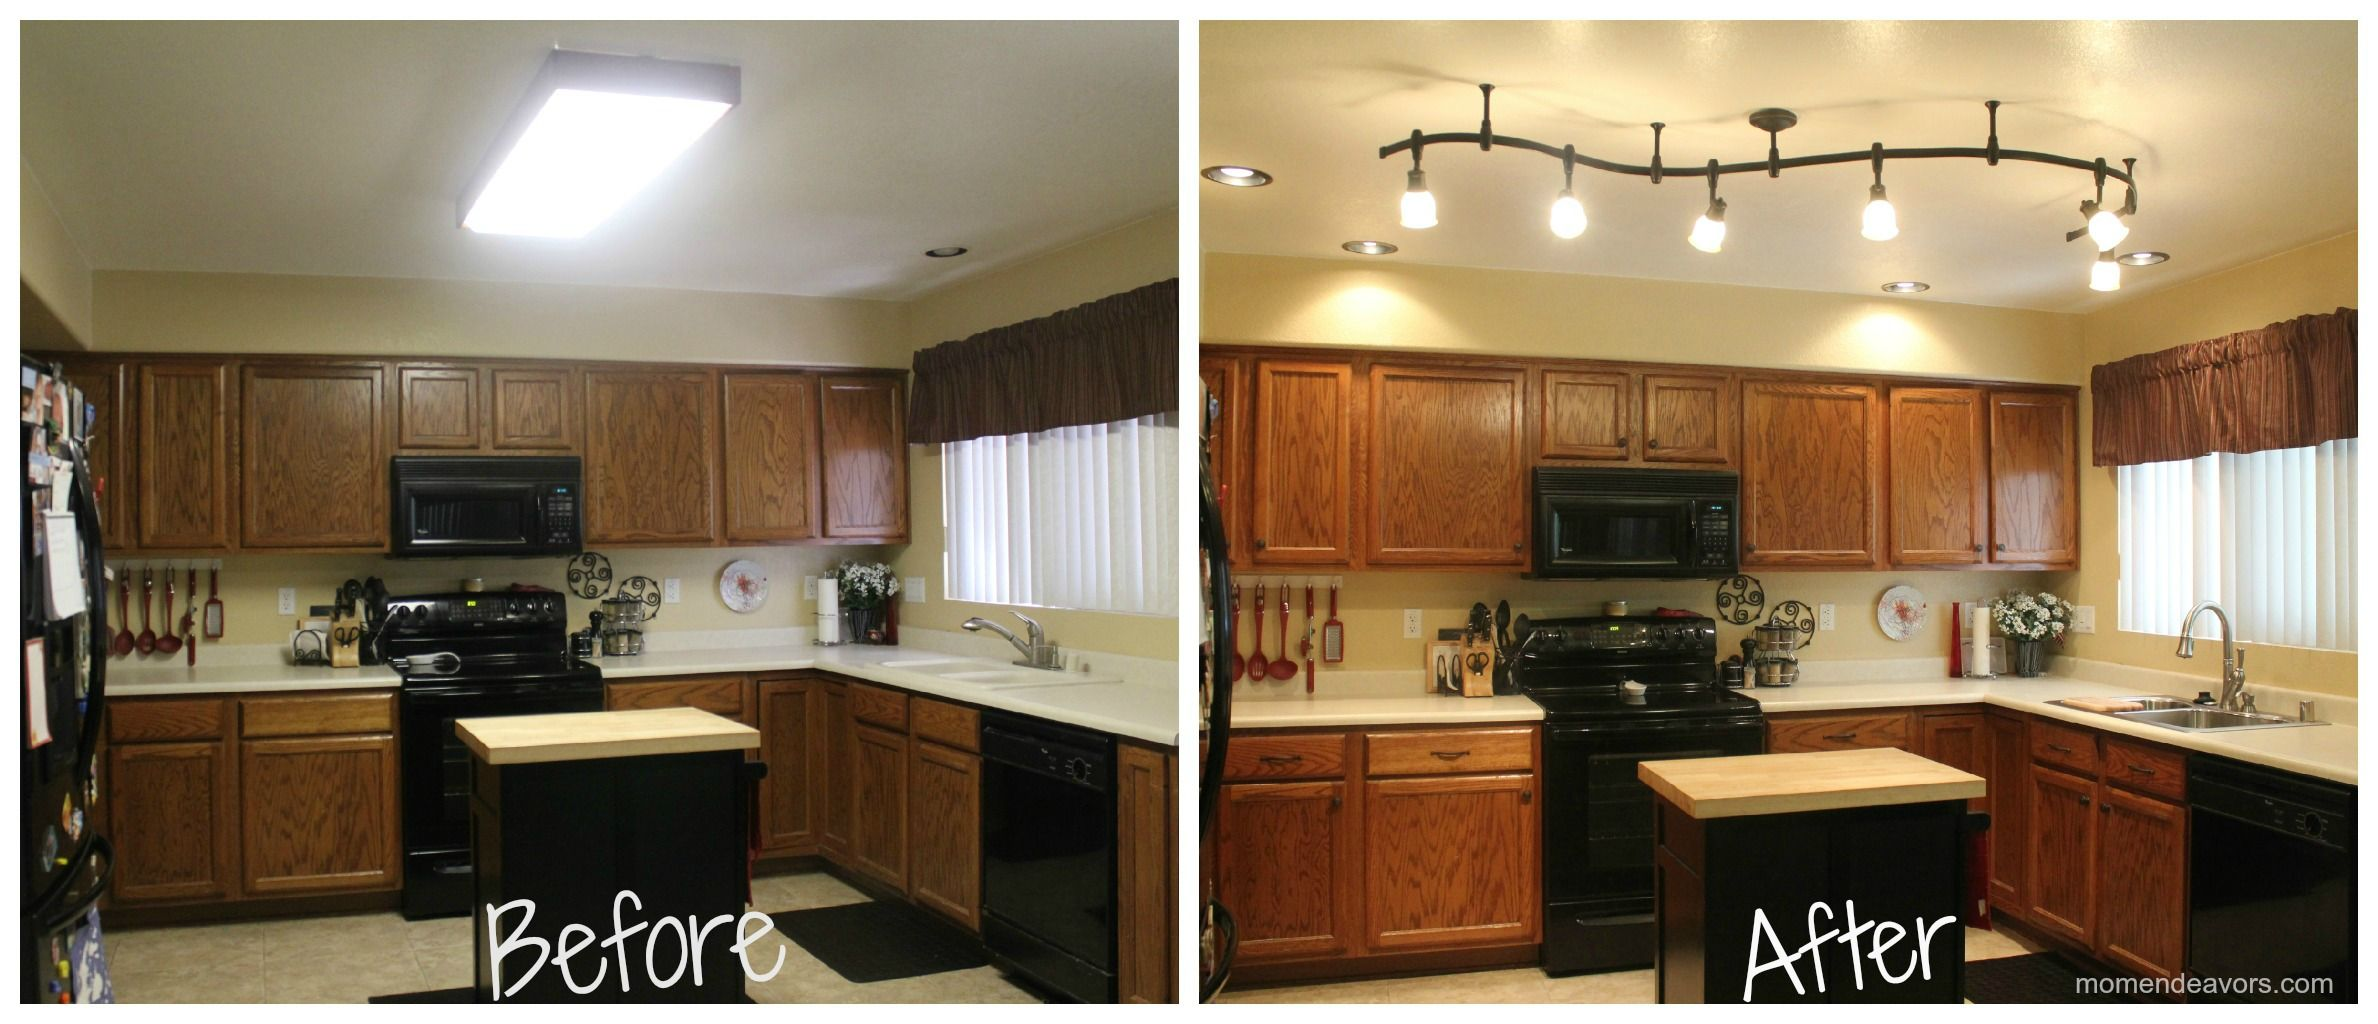 Kitchen Lights Home Depot Home Depot Kitchen Design Images Lowes Kitchen Cabinet Refacing